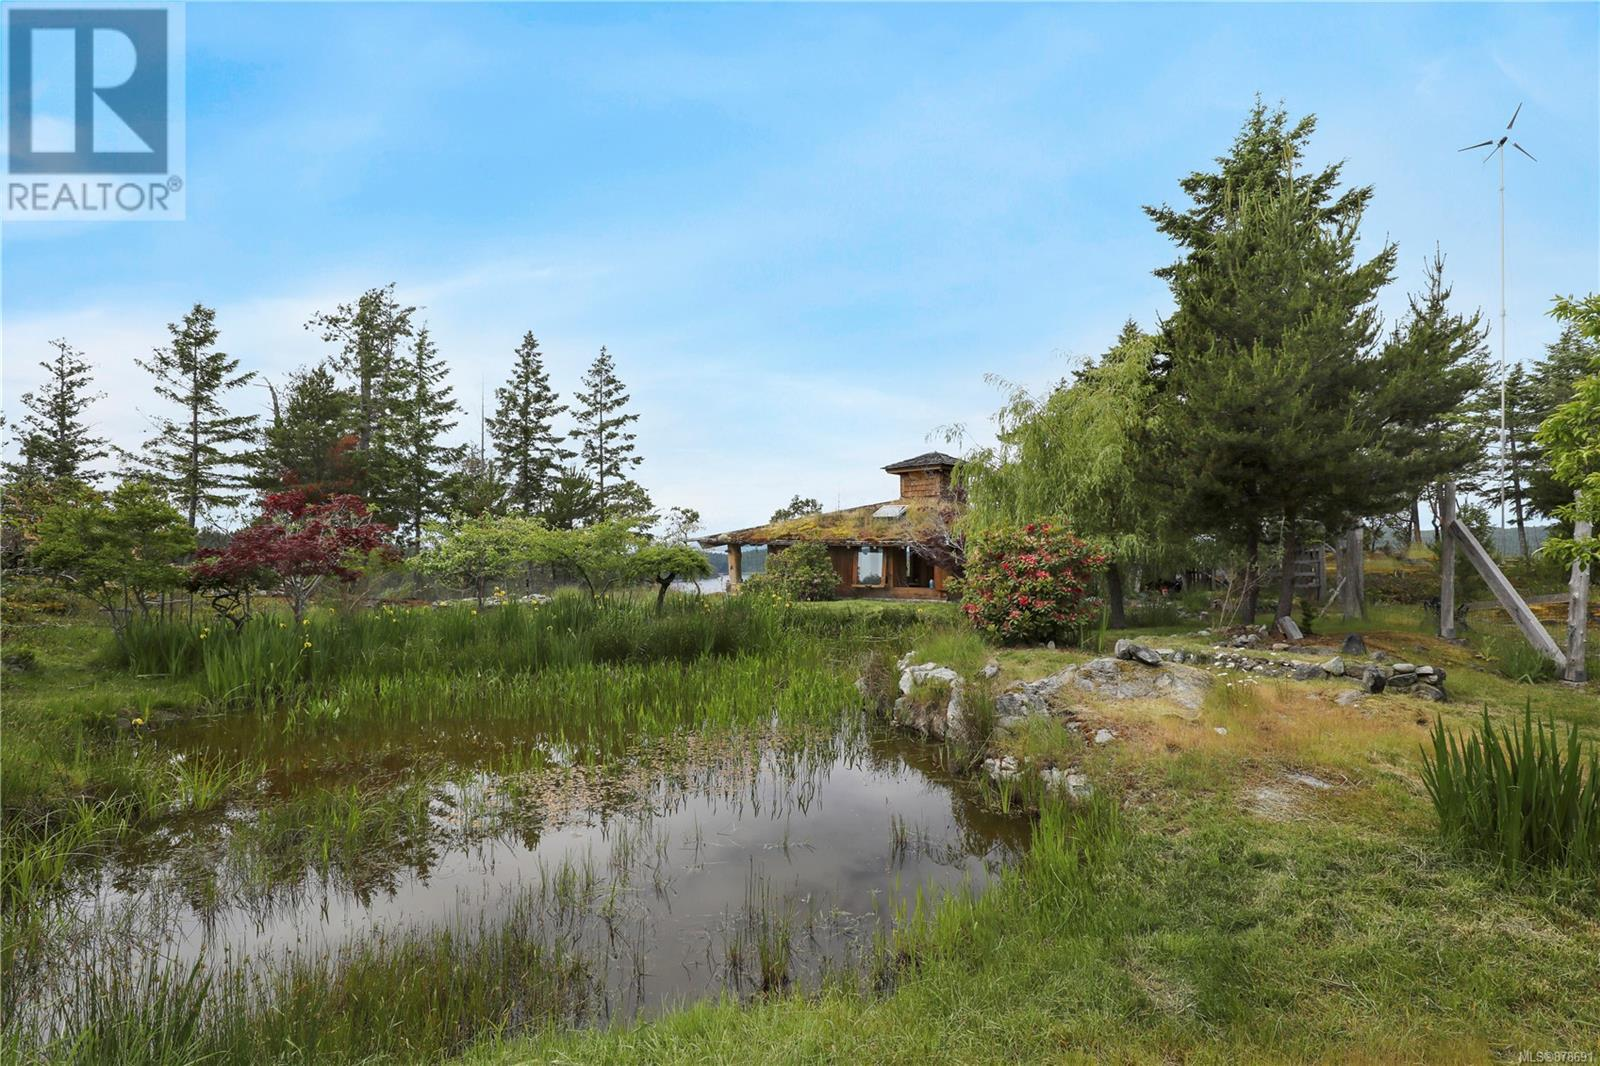 MLS® #878691 - Cortes Island House For sale Image #33